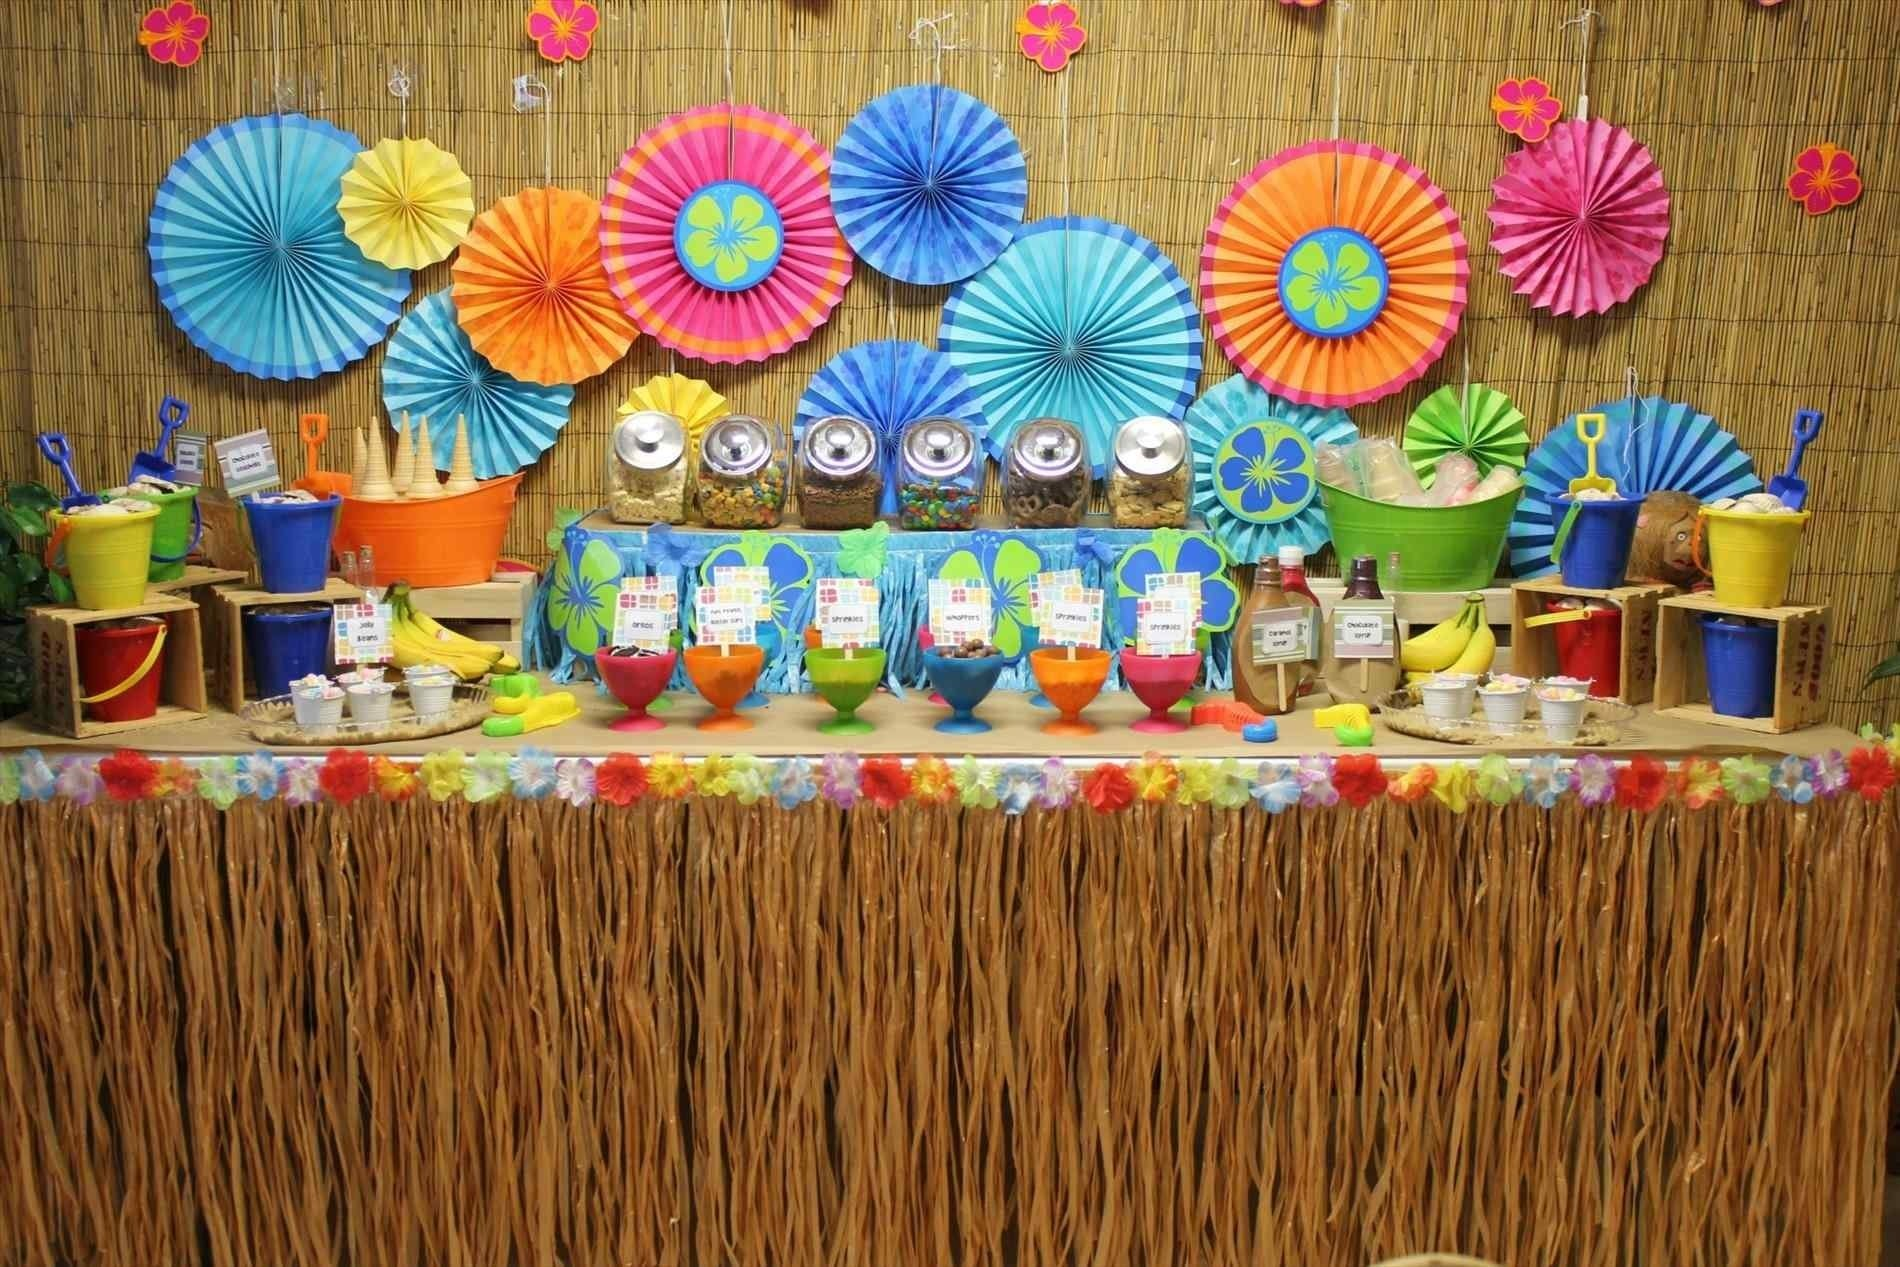 cool beach party ideas for adults birthday pool dessert cake make